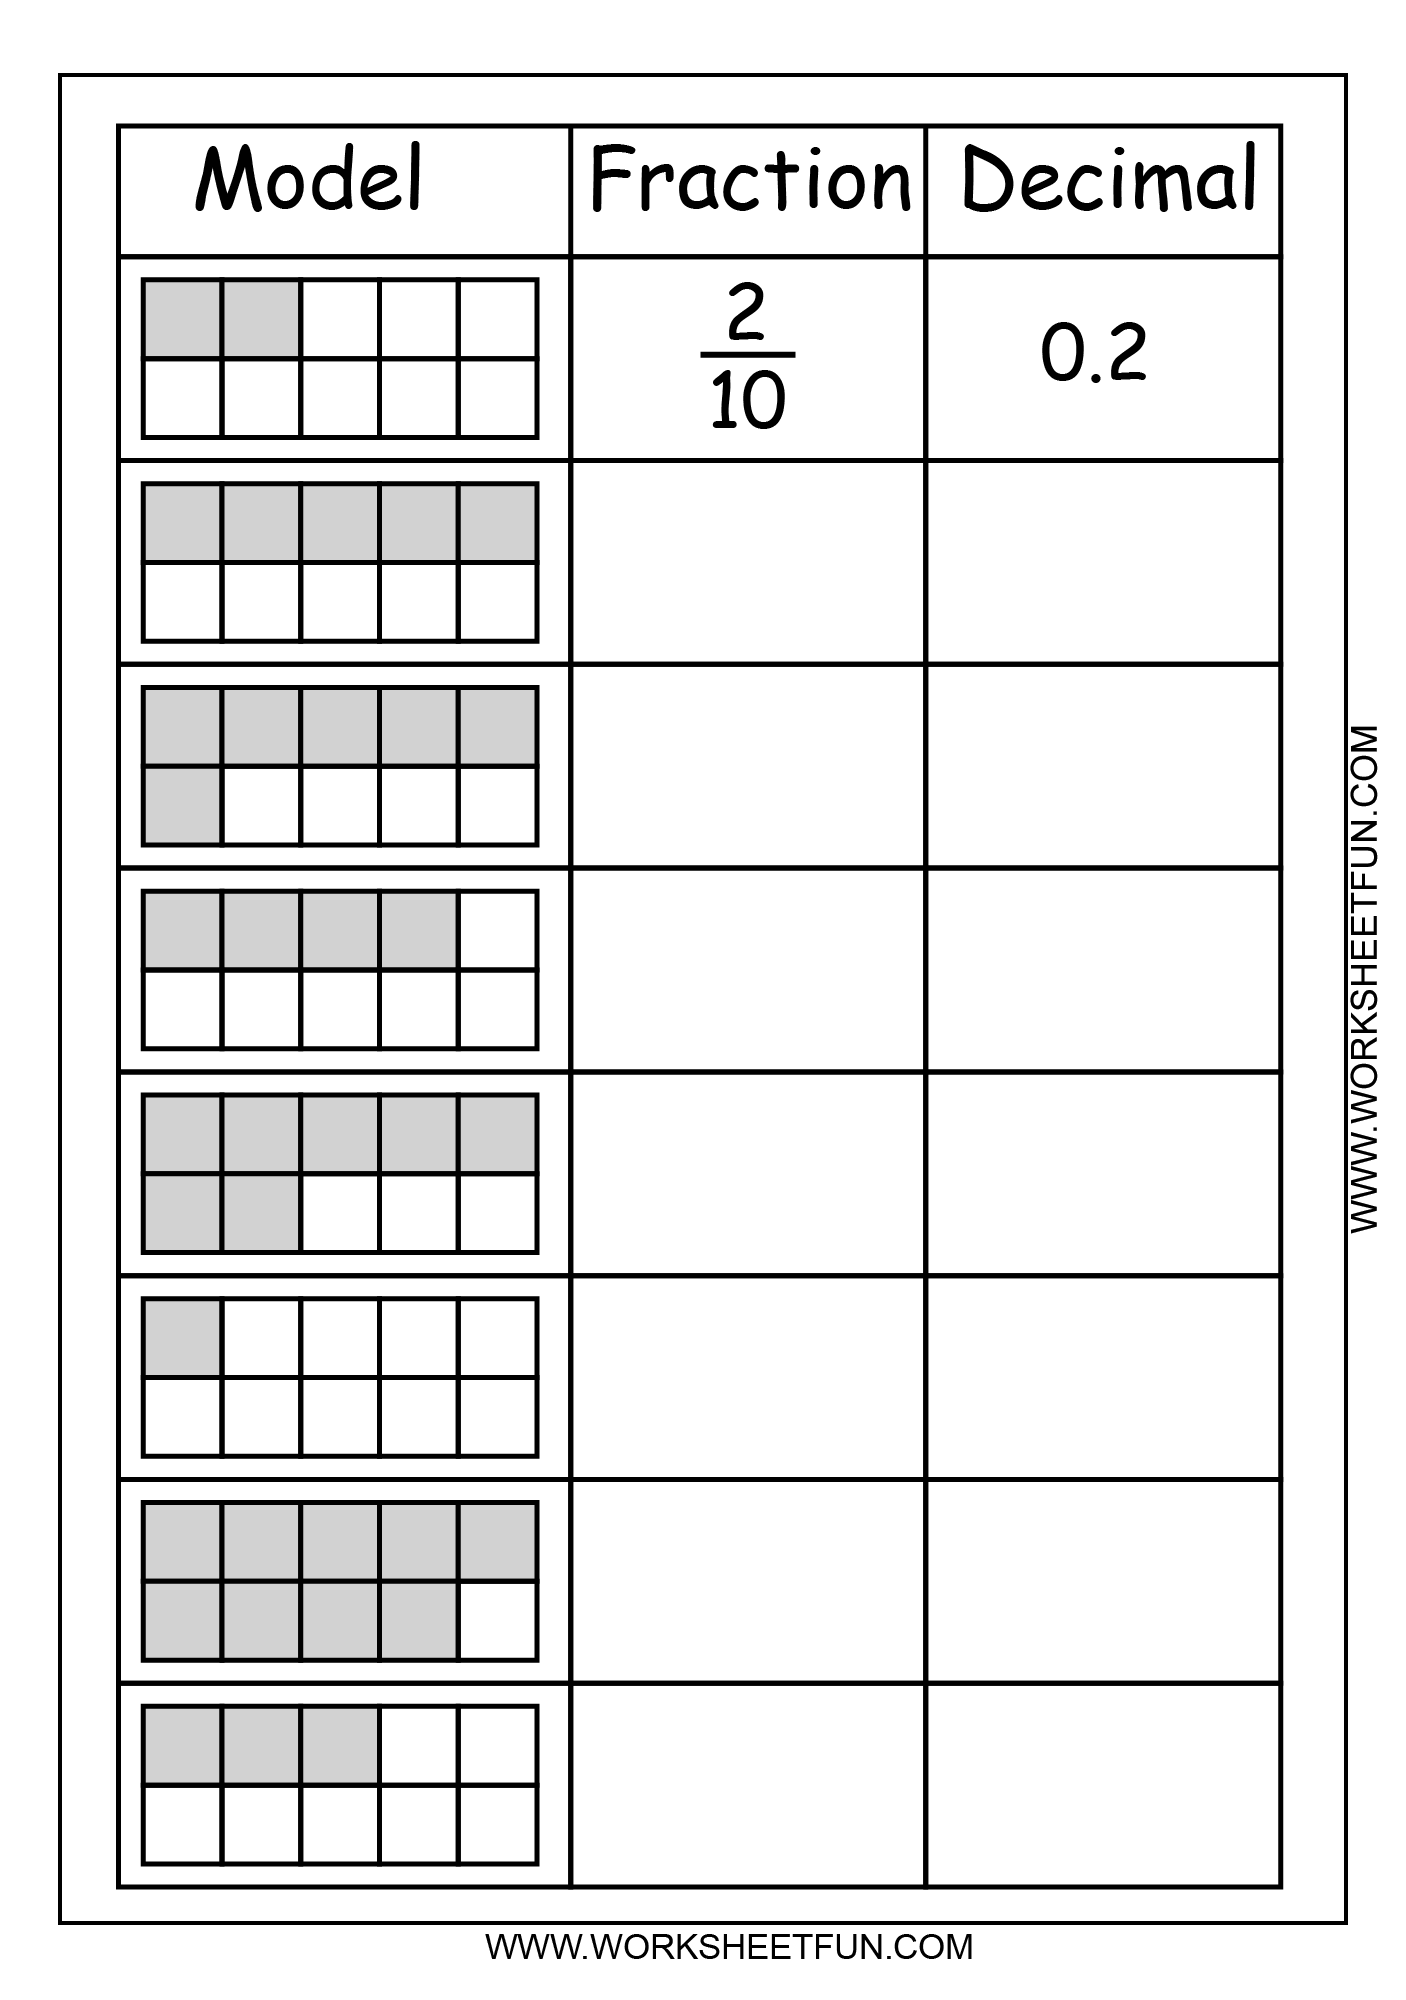 Printables Decimal And Fraction Worksheet 1000 images about decimal worksheets on pinterest models kid and adding decimals